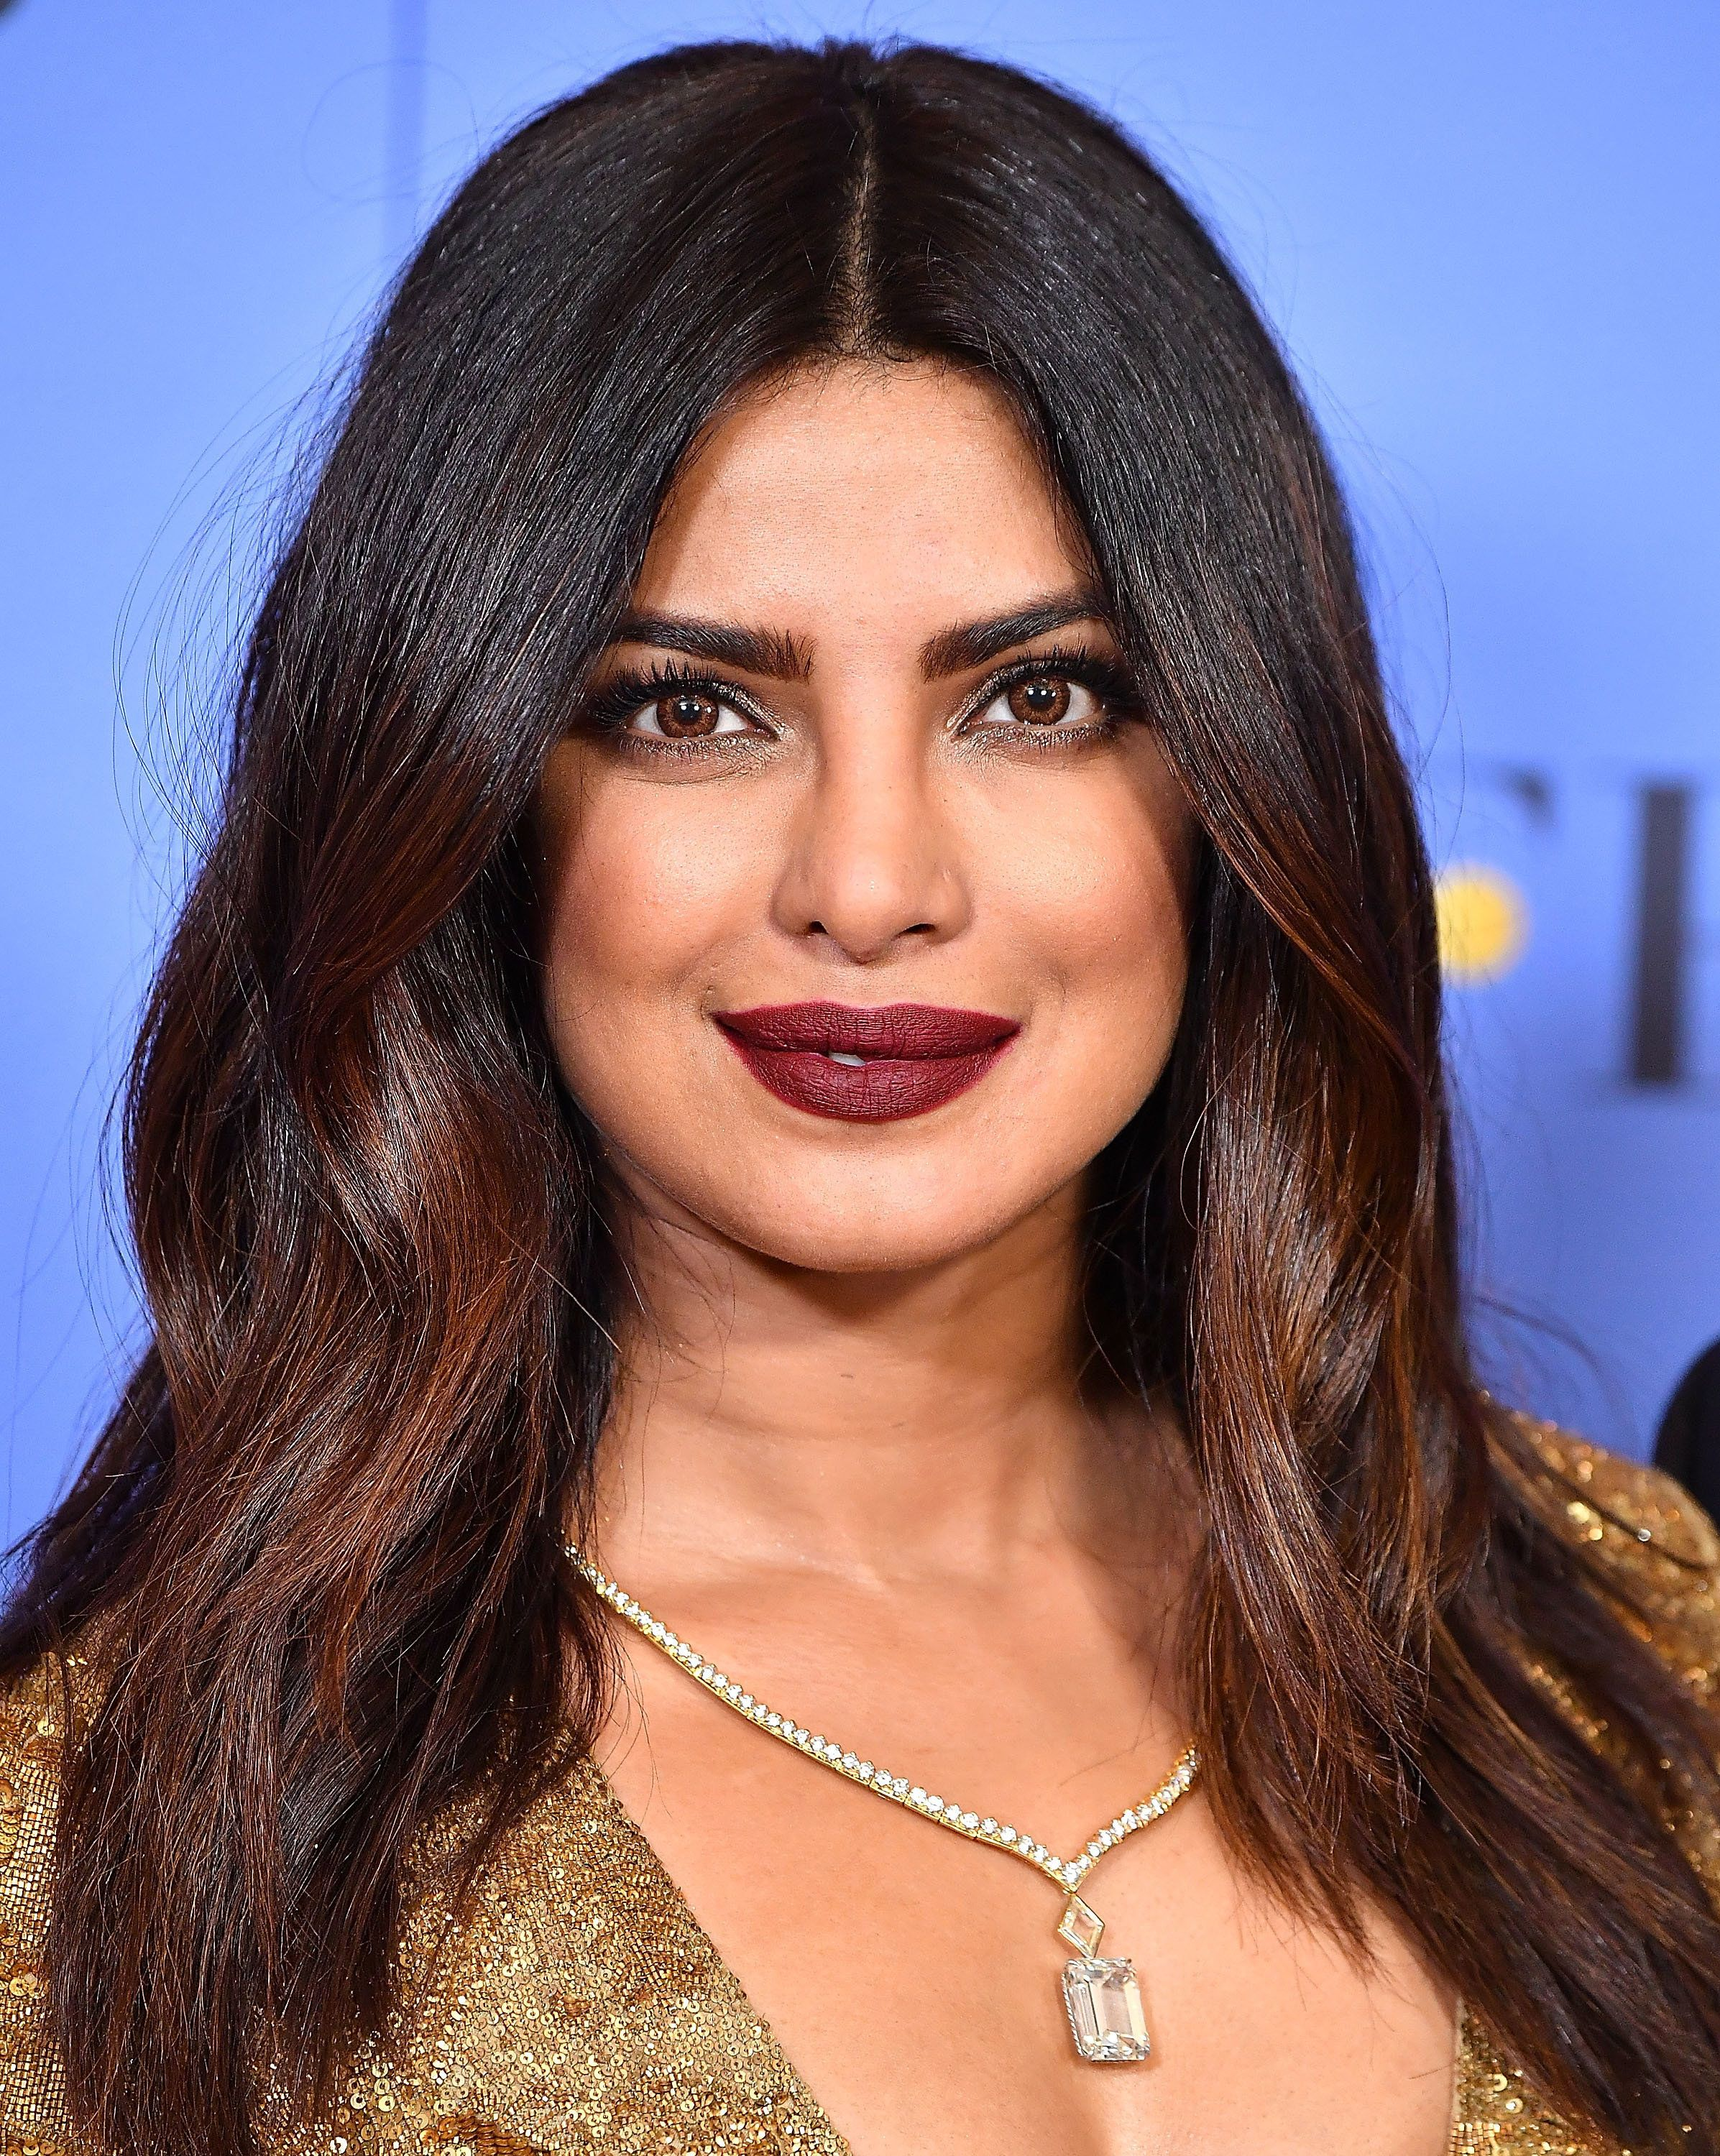 BEVERLY HILLS, CA - JANUARY 08:  poses Priyanka Chopra at the 74th Annual Golden Globe Awards at The Beverly Hilton Hotel on January 8, 2017 in Beverly Hills, California.  (Photo by Steve Granitz/WireImage)